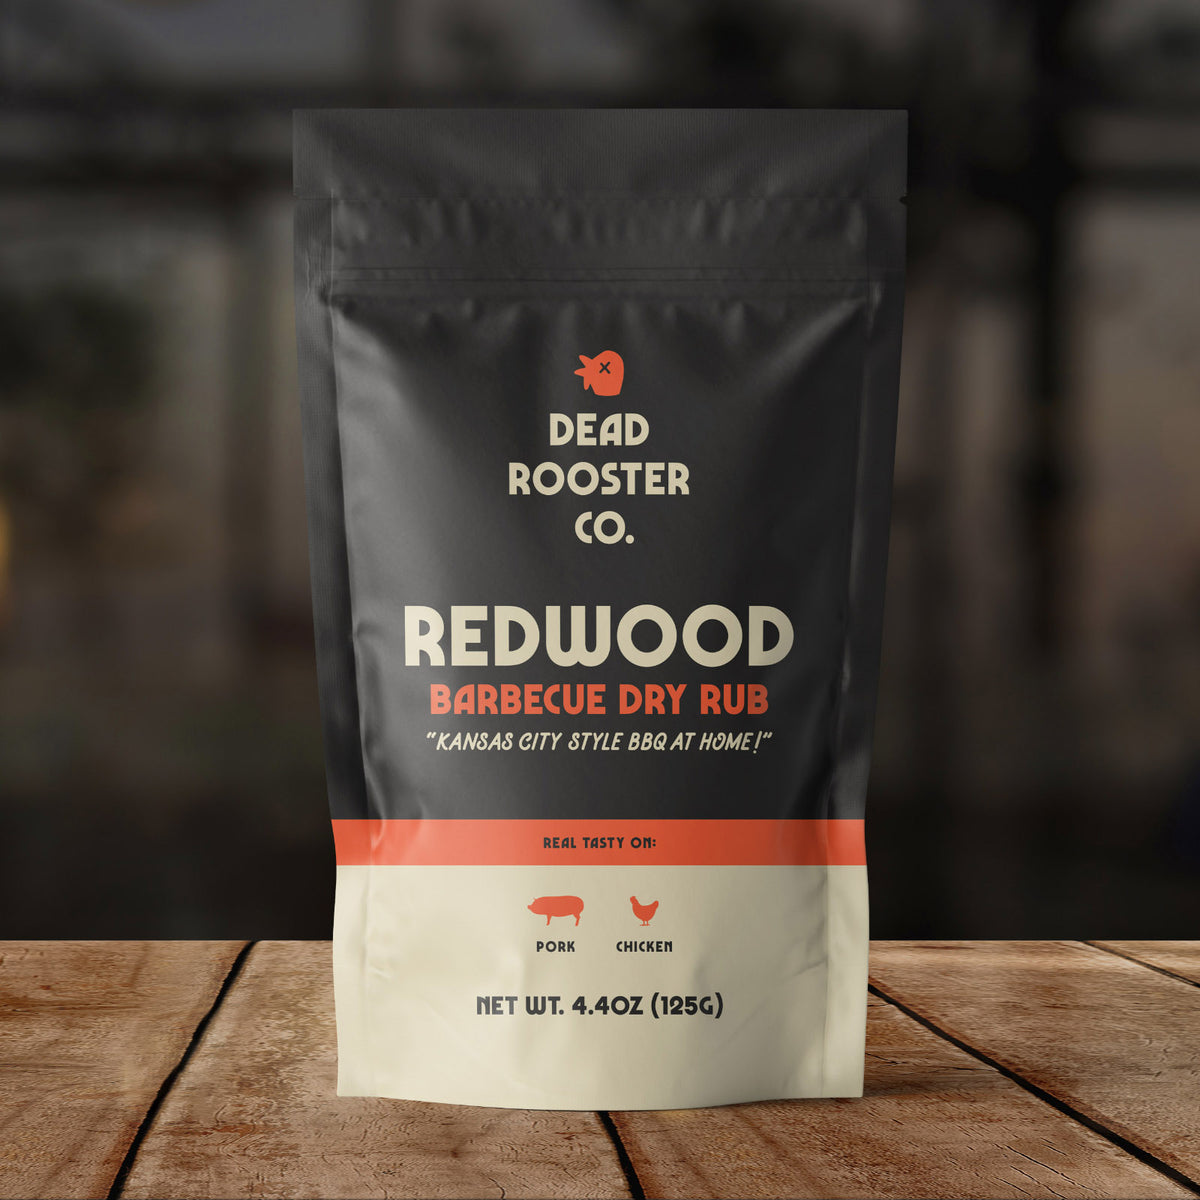 Redwood <br><sub>BBQ Dry Rub</sub>